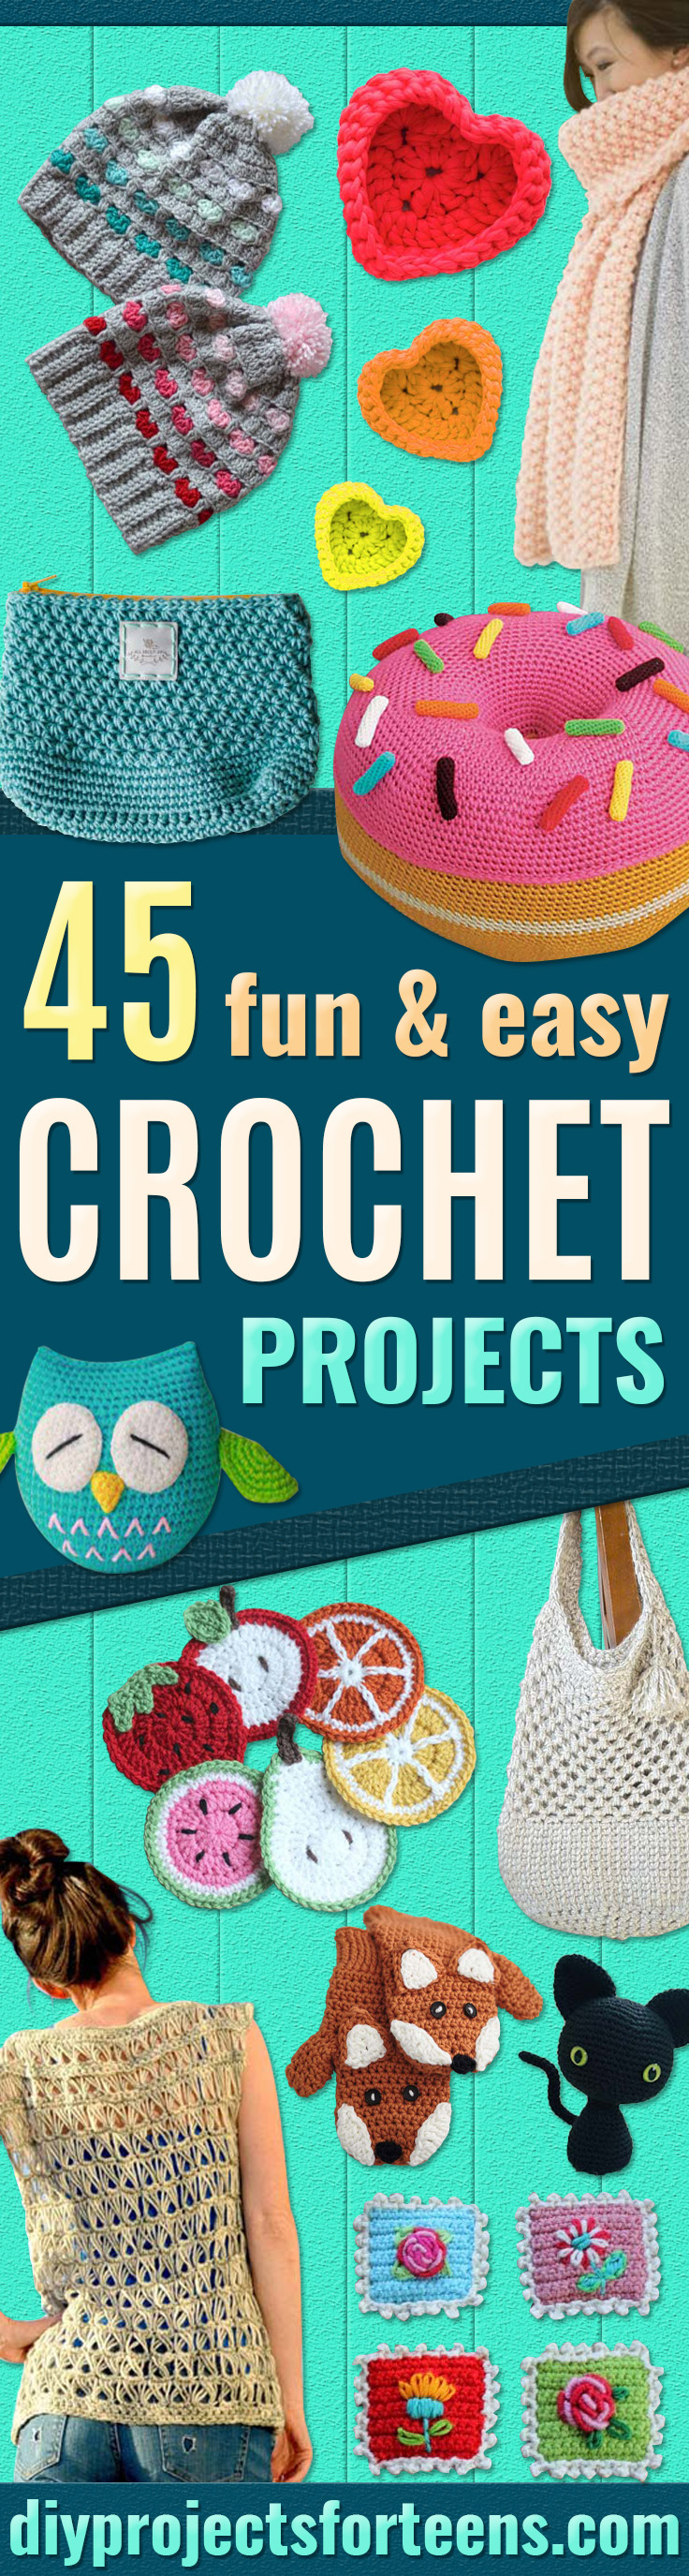 45 Crochet Projects With Free Patterns